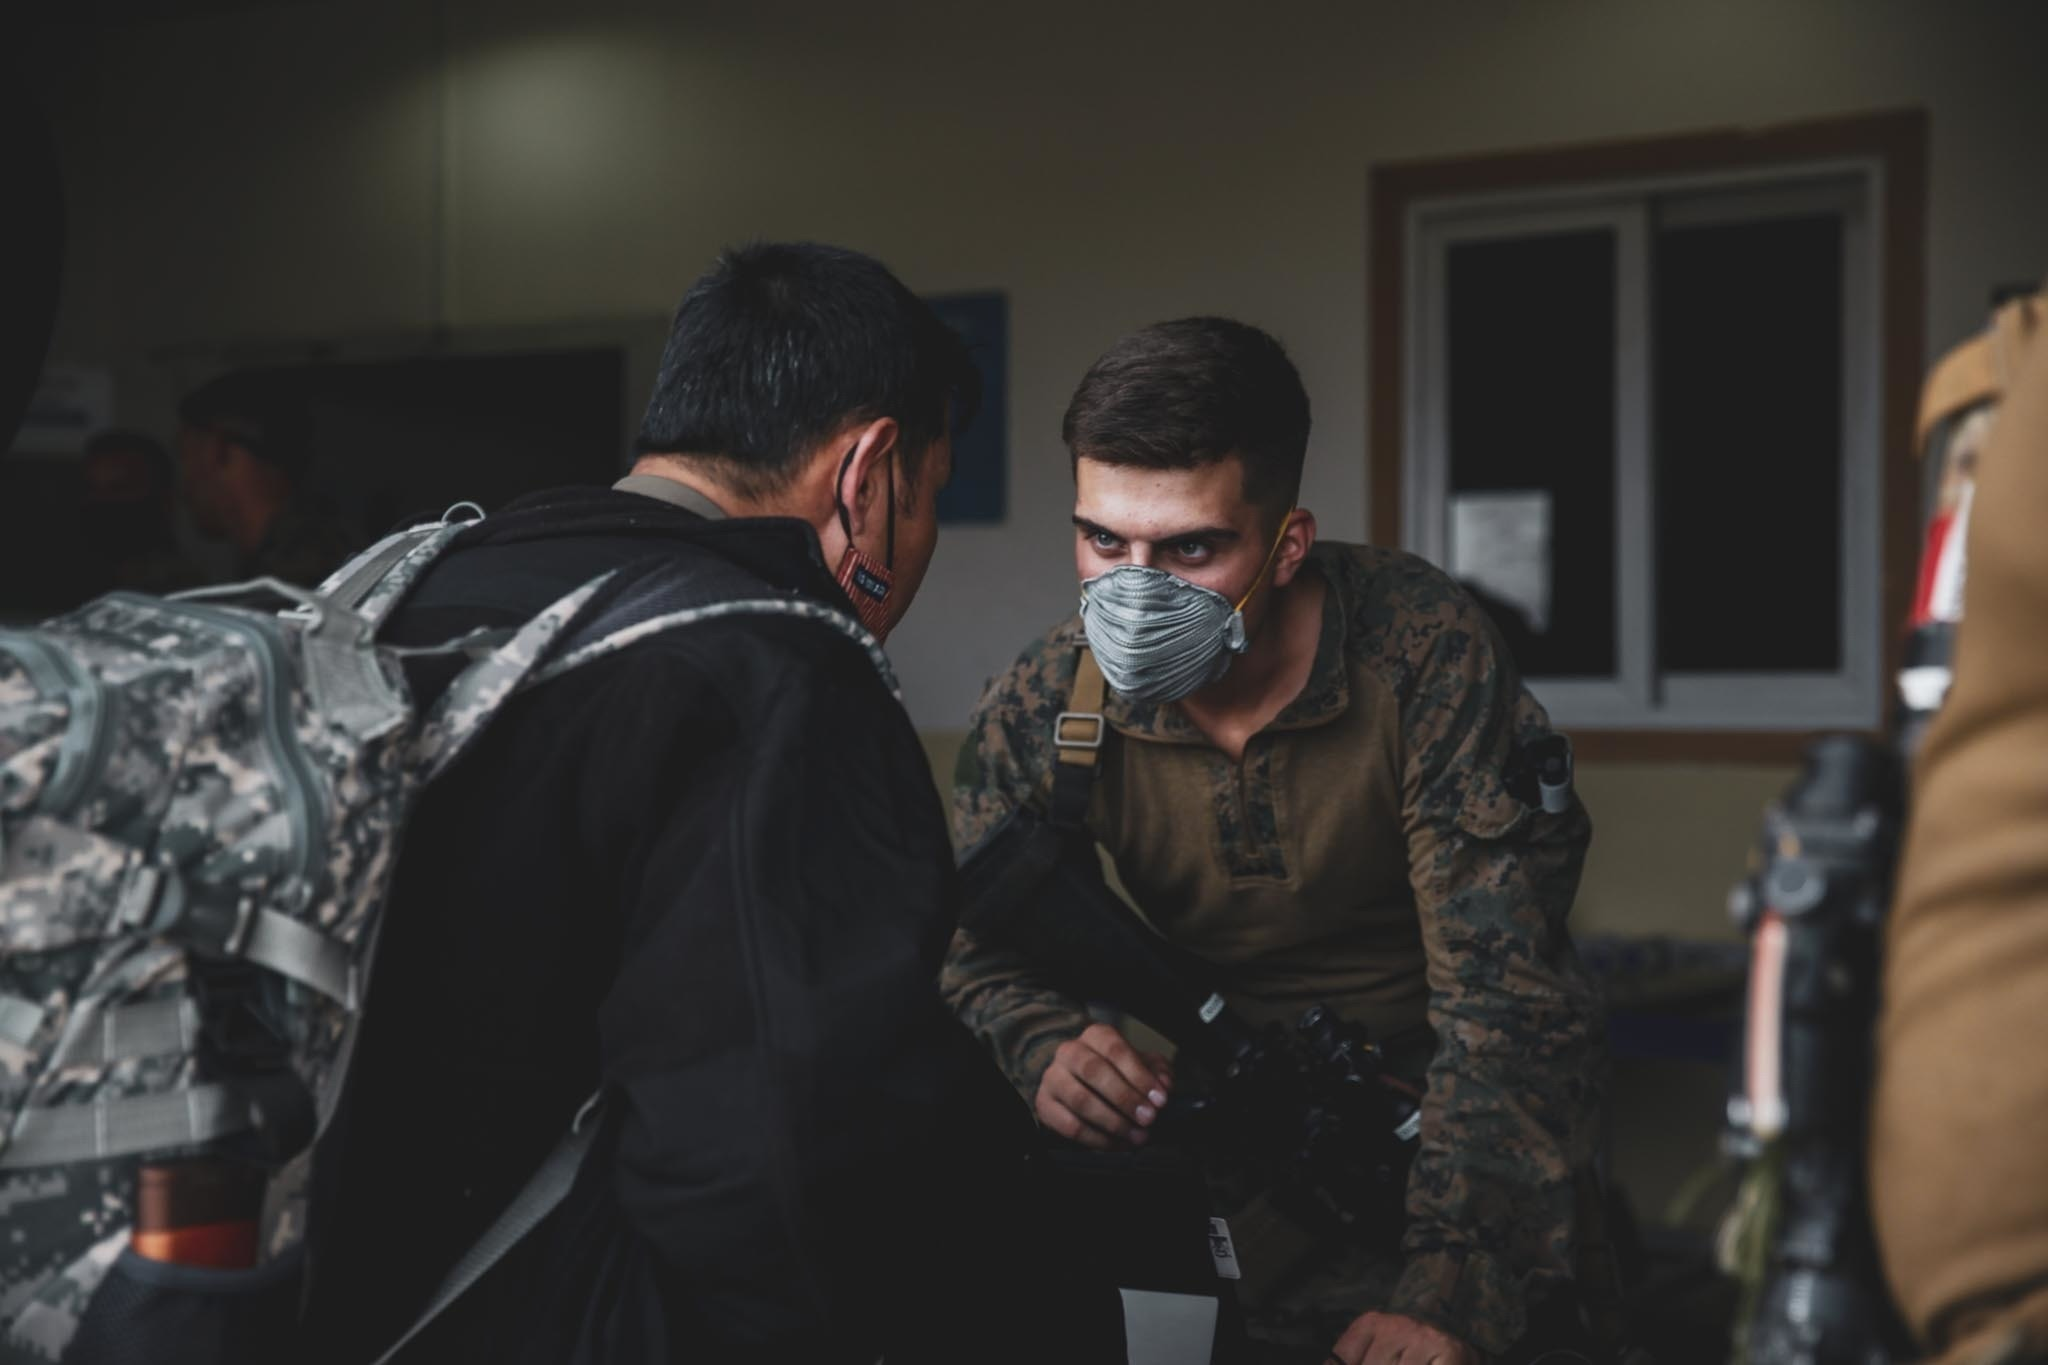 A Marine assigned to the 24th Marine Expeditionary Unit (MEU) processes an evacuee at Hamid Karzai International Airport, Kabul, Afghanistan, August 15. U.S. Soldiers and Marines are assisting the Department of State with an orderly drawdown of designated personnel in Afghanistan. (U.S. Marine Corps photo by Sgt. Isaiah Campbell)